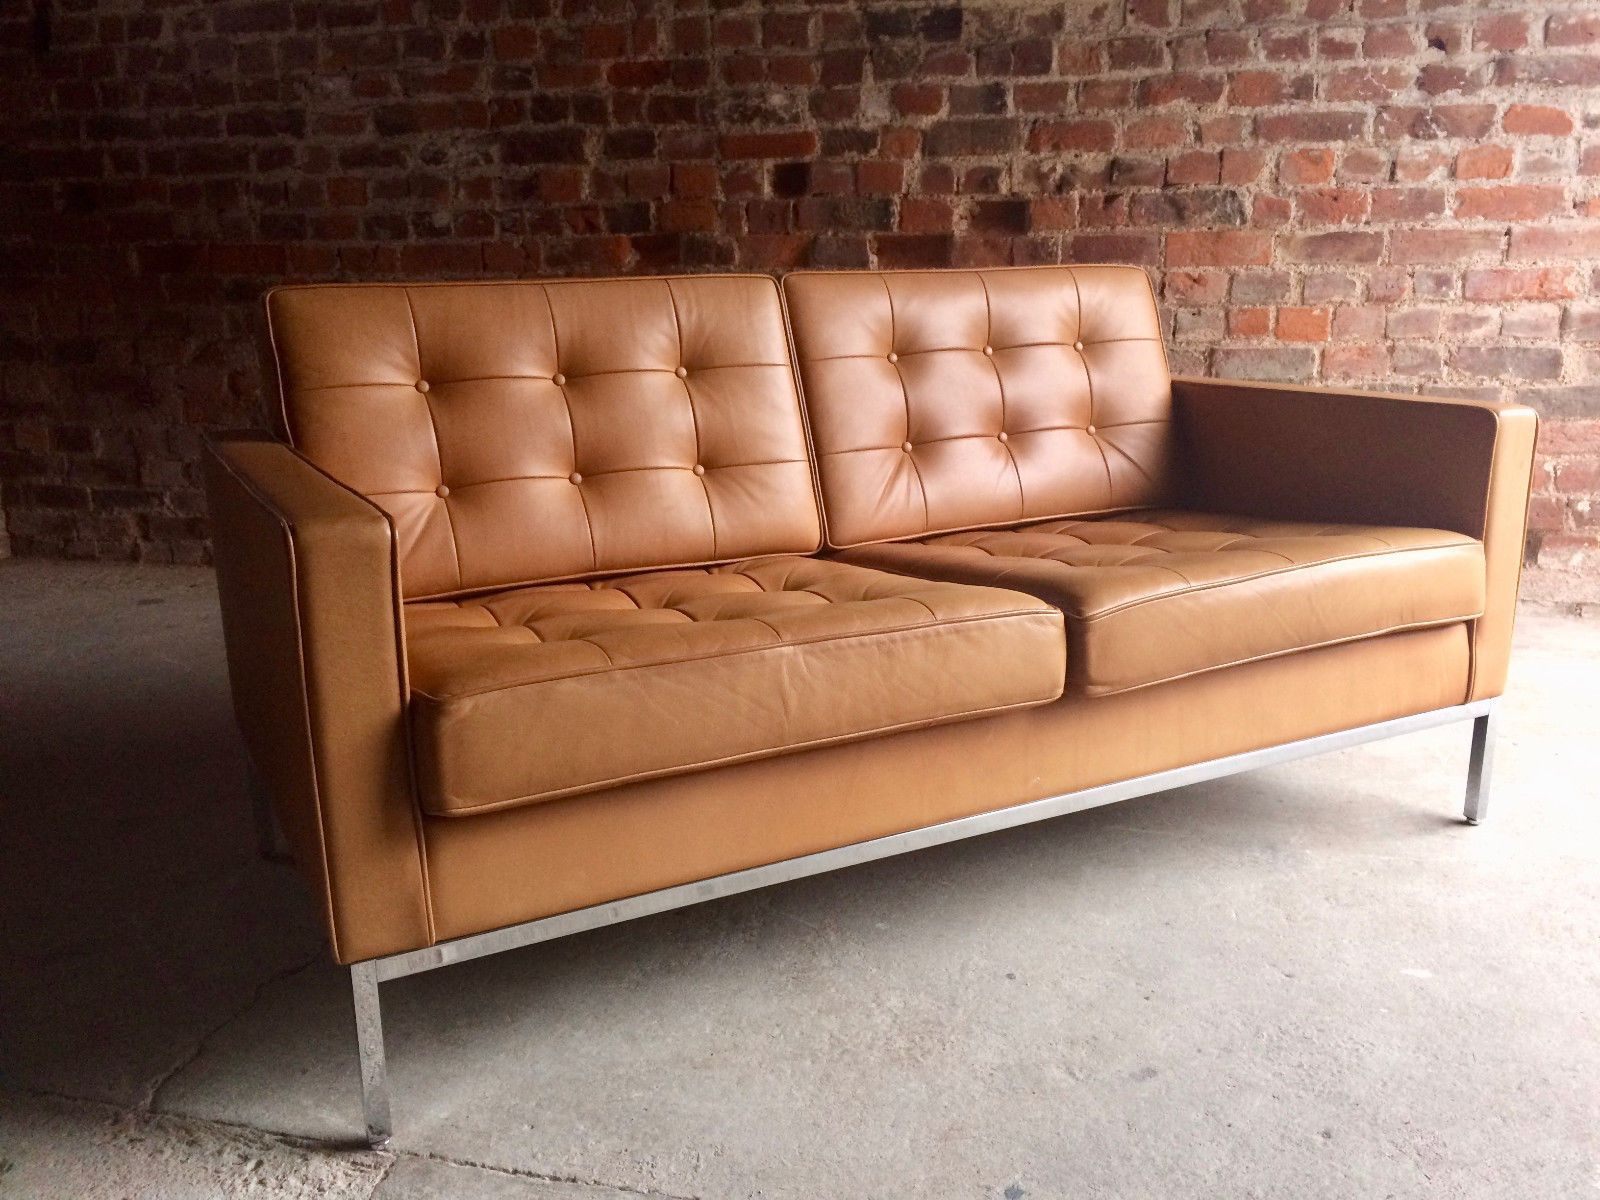 Sofa Number Two, Original Florence Knollknoll Studio Pertaining To Florence Knoll Leather Sofas (View 6 of 15)